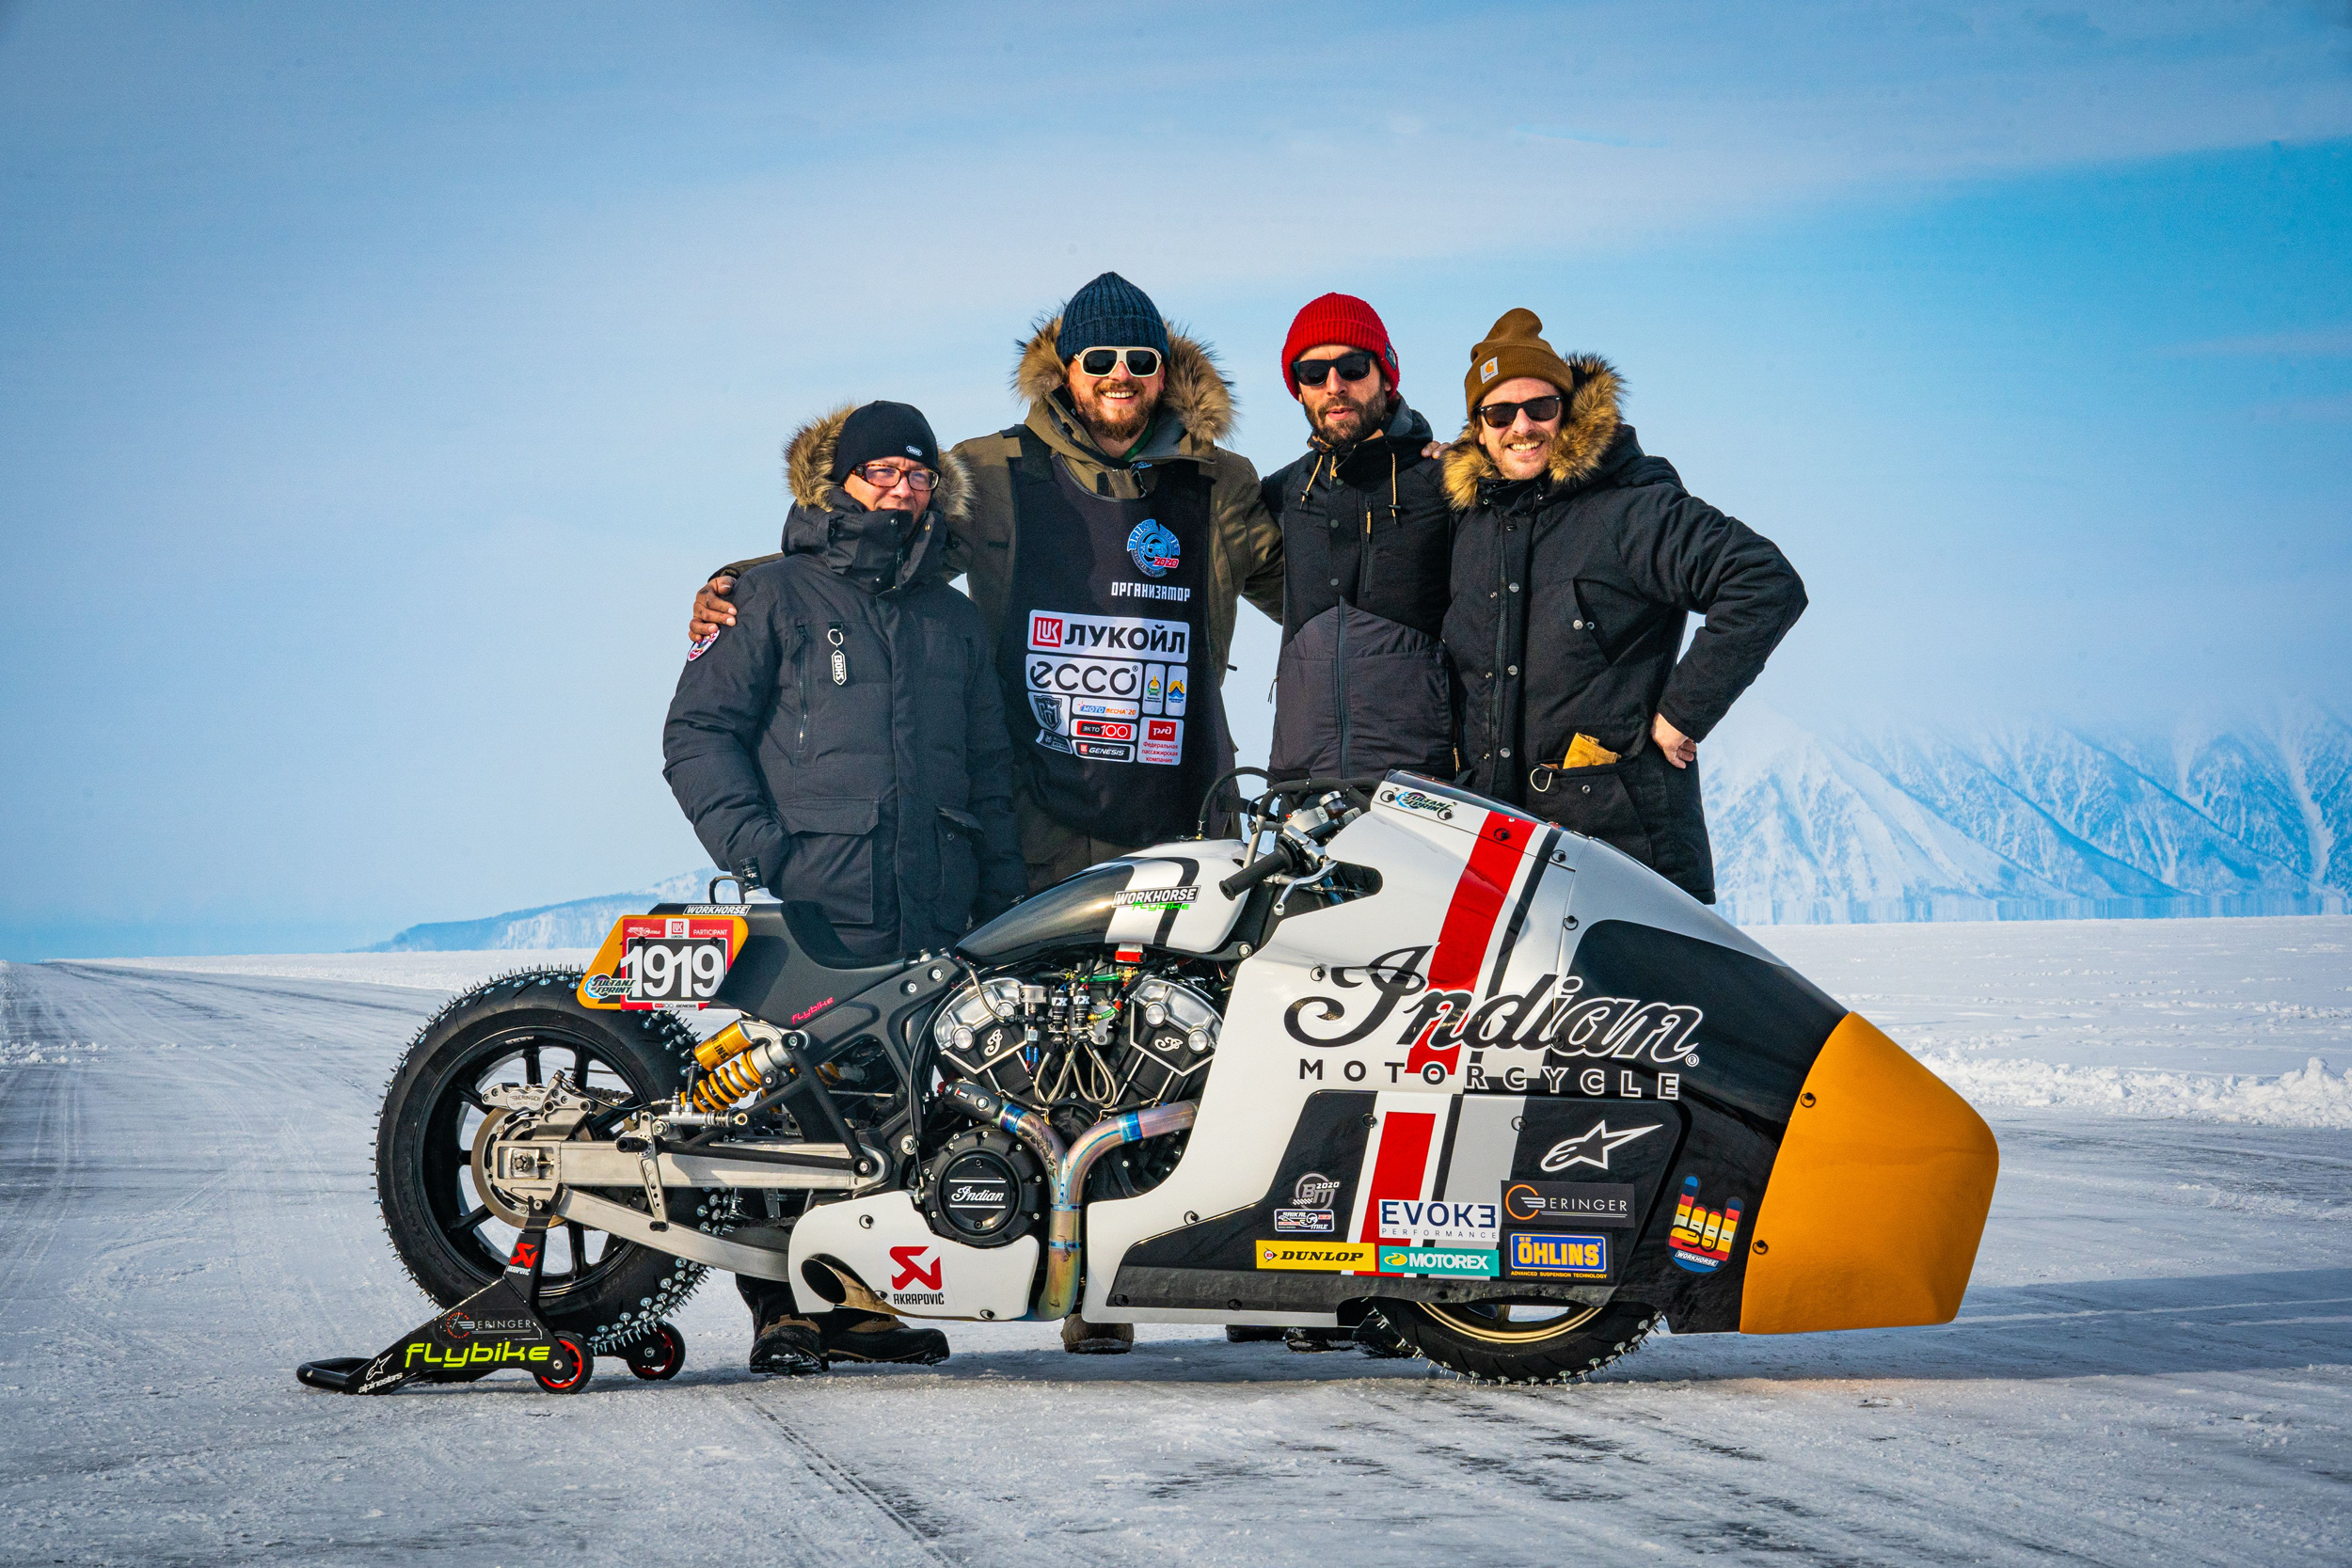 200227 Appaloosa v2.0 to be unleashed at 2020 Baikal Mile Ice Speed Festival [2]